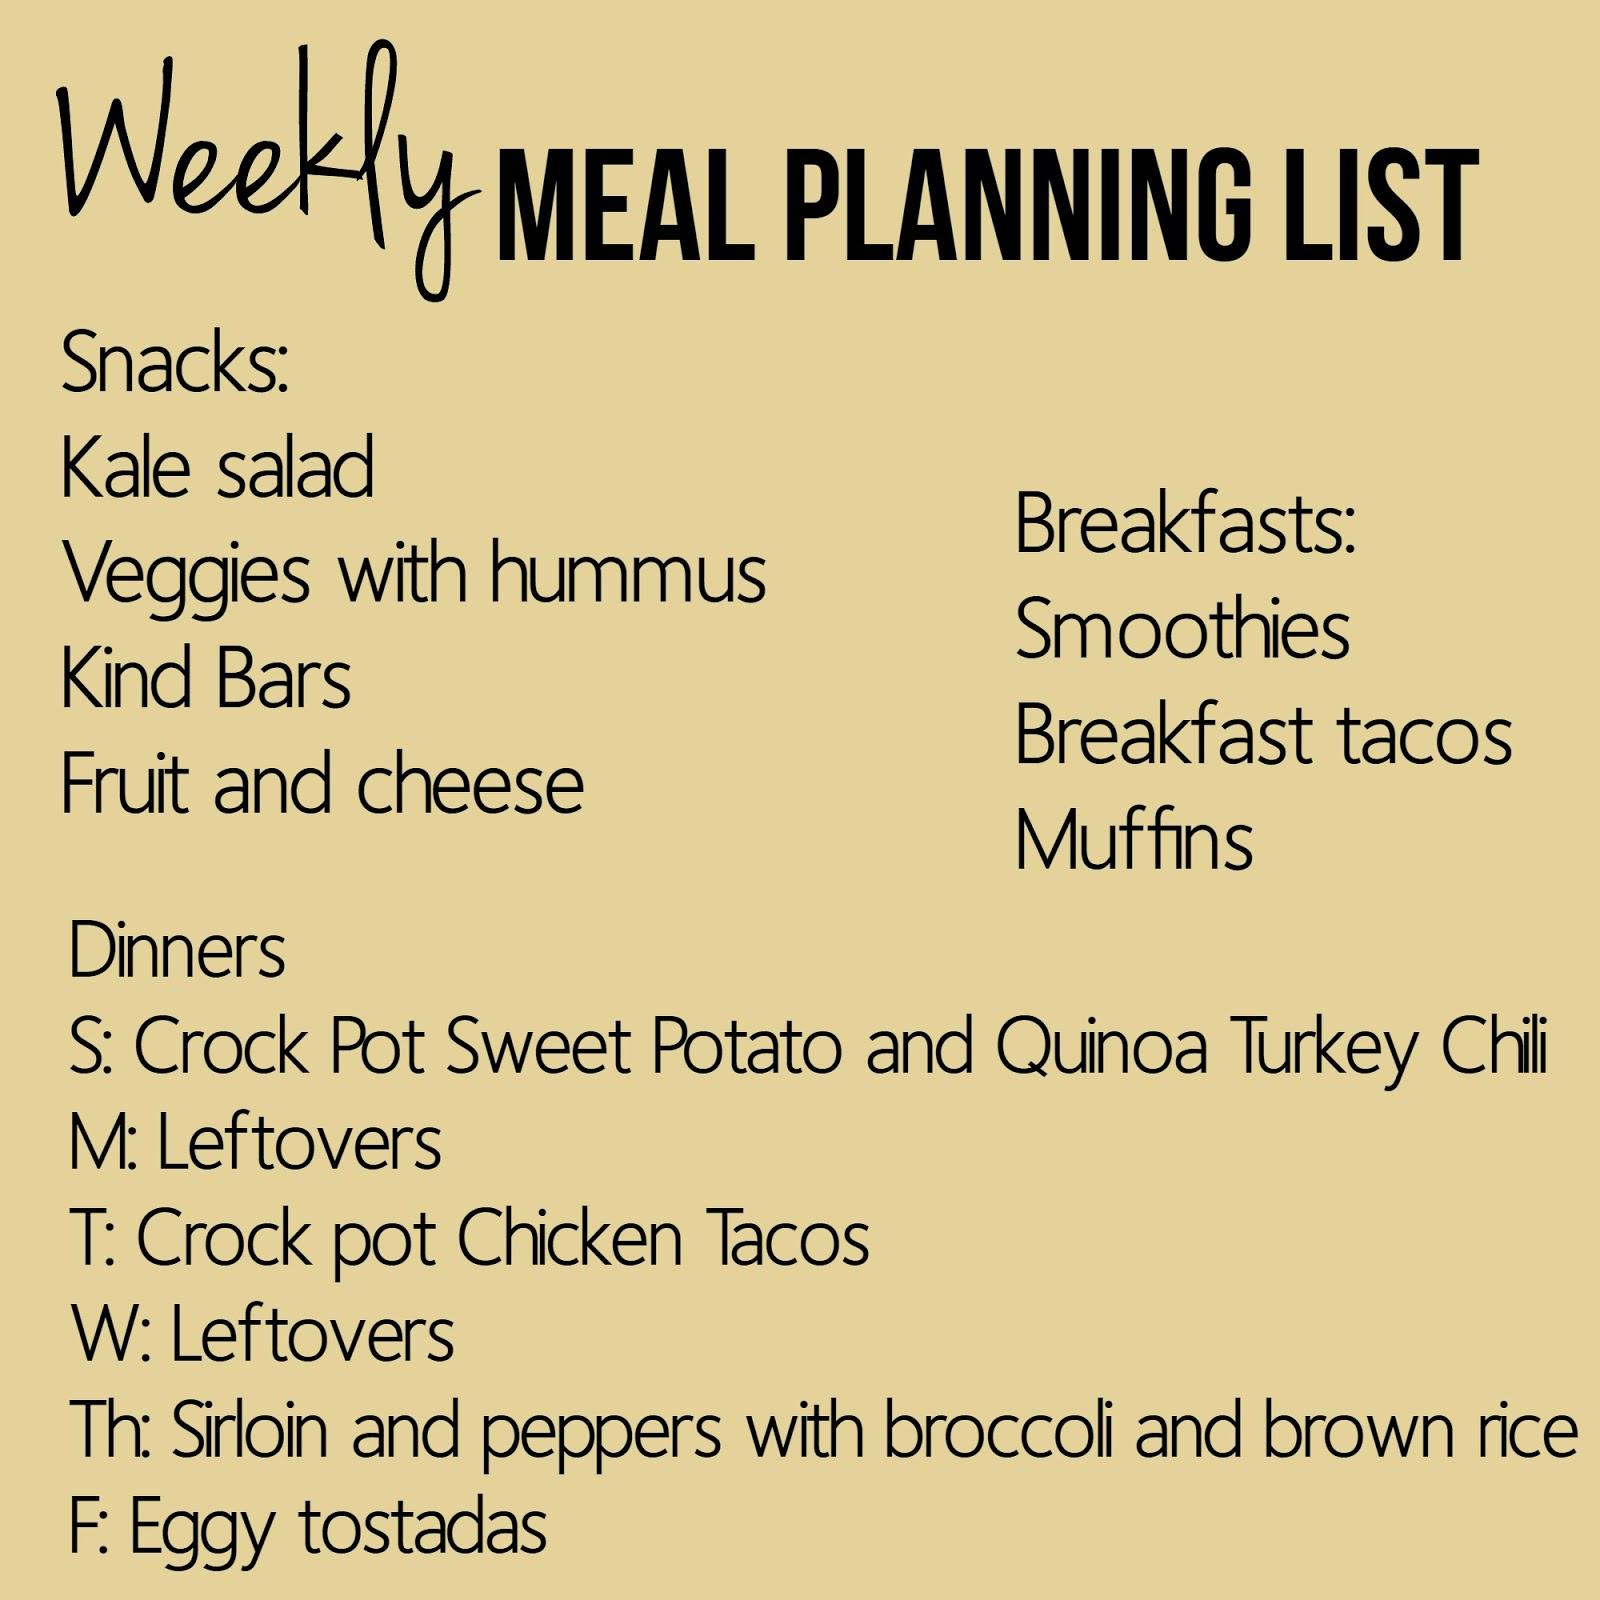 Weekly Meal Planning List | Bubbles and Gold (www.bubblesandgold.com)